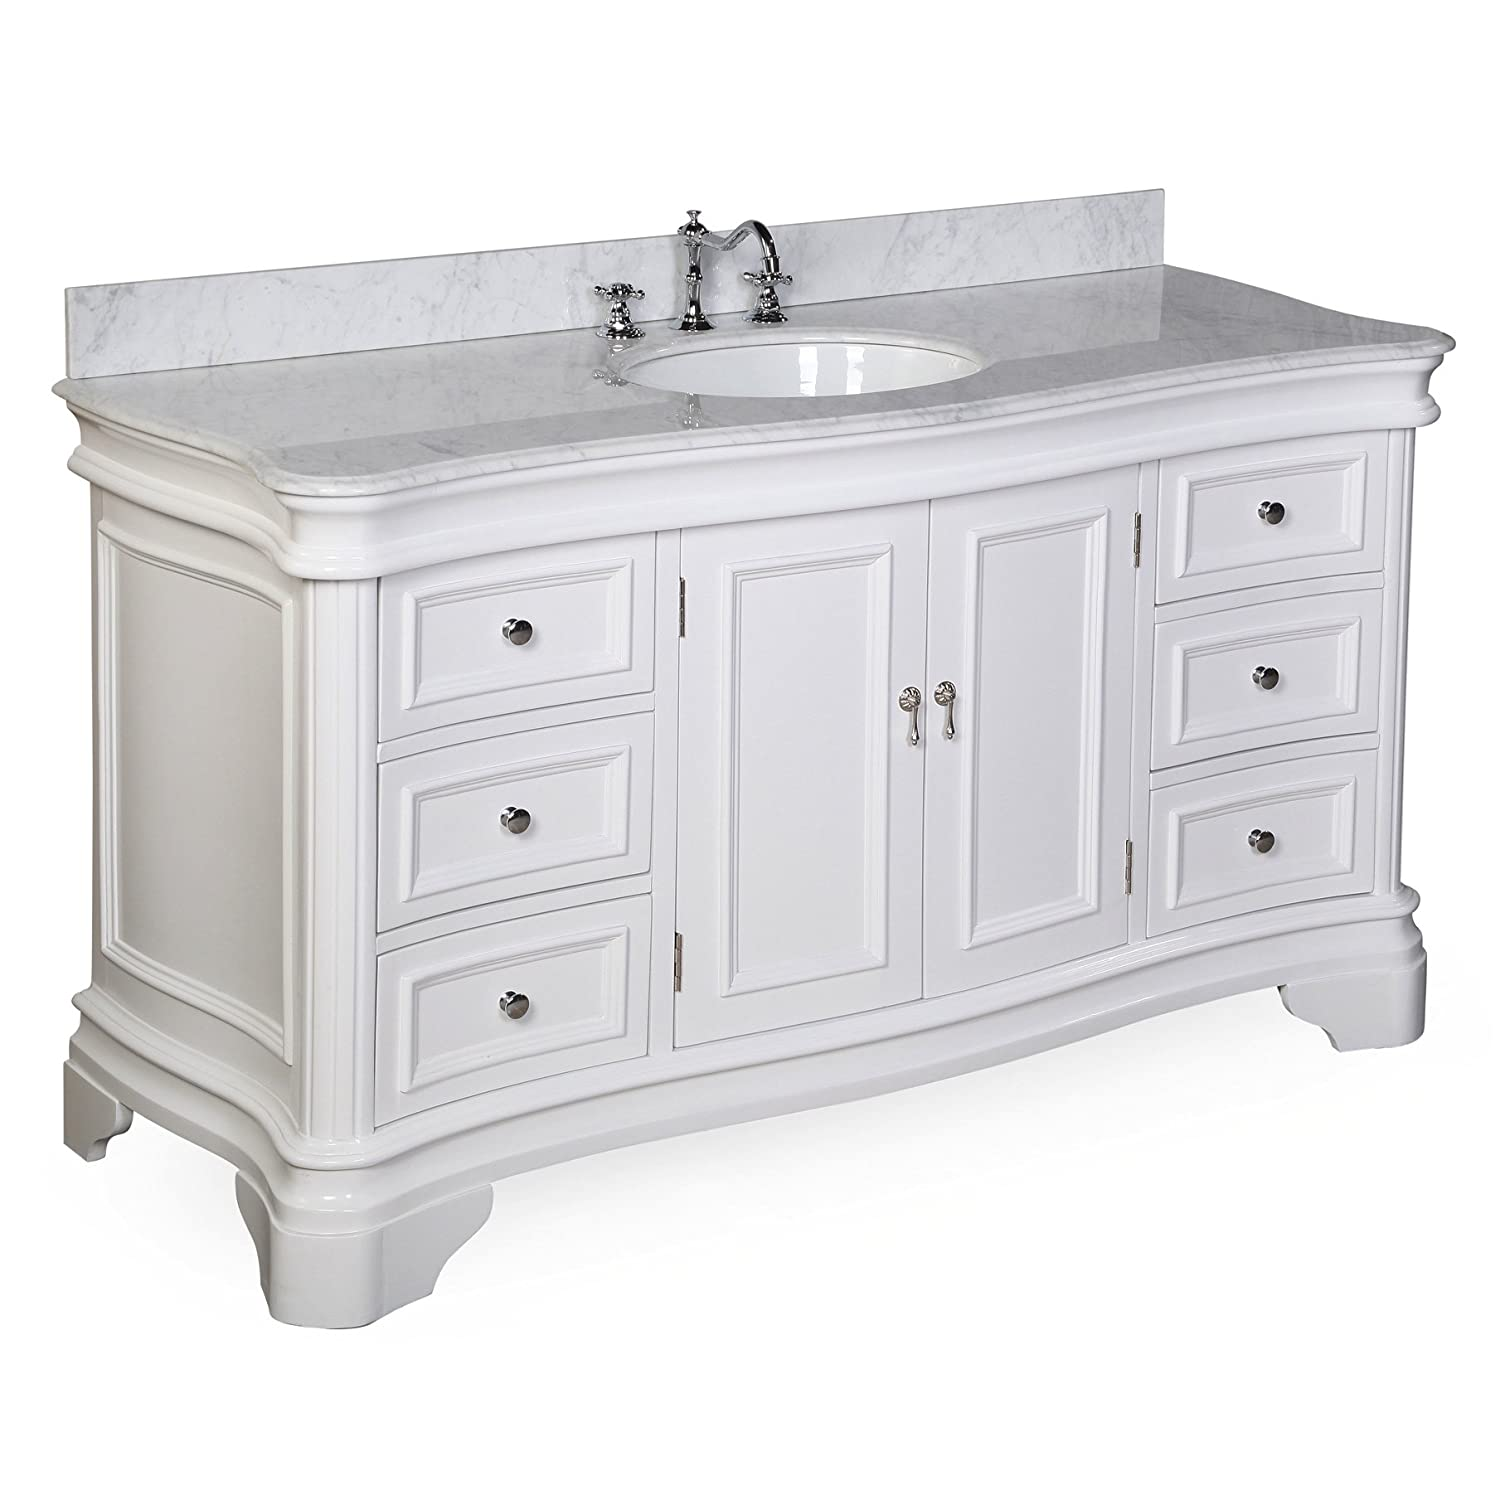 Katherine 60-inch Single Vanity Carrara White Includes White Cabinet with Authentic Italian Carrara Marble Countertop and White Ceramic Sink